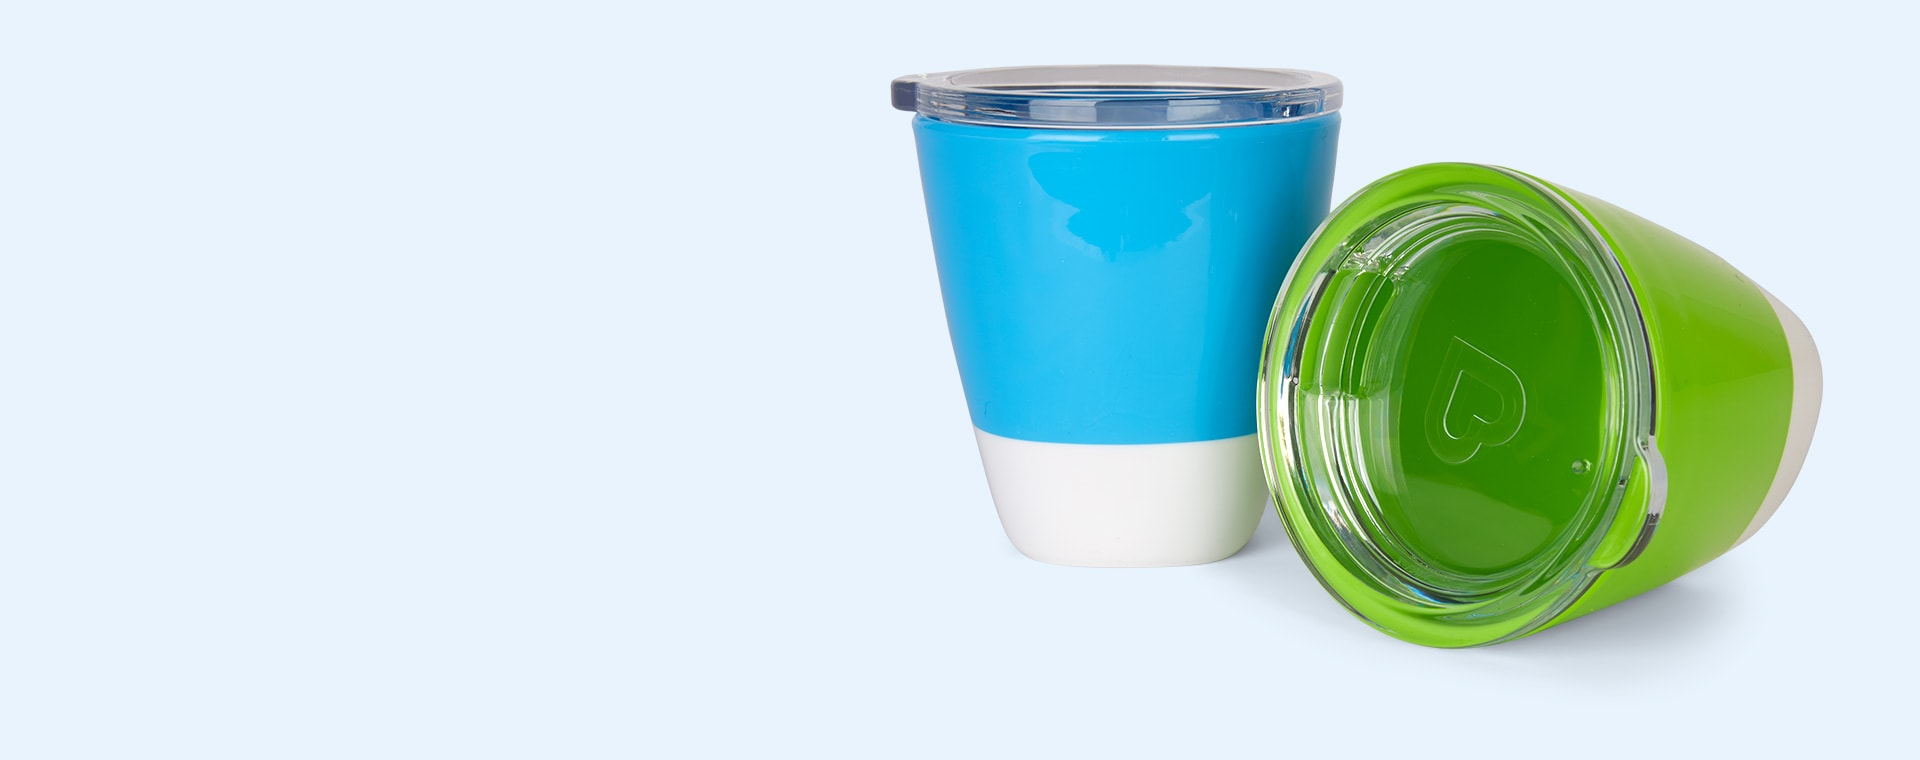 Blue/Green Munchkin Splash Toddler Cup